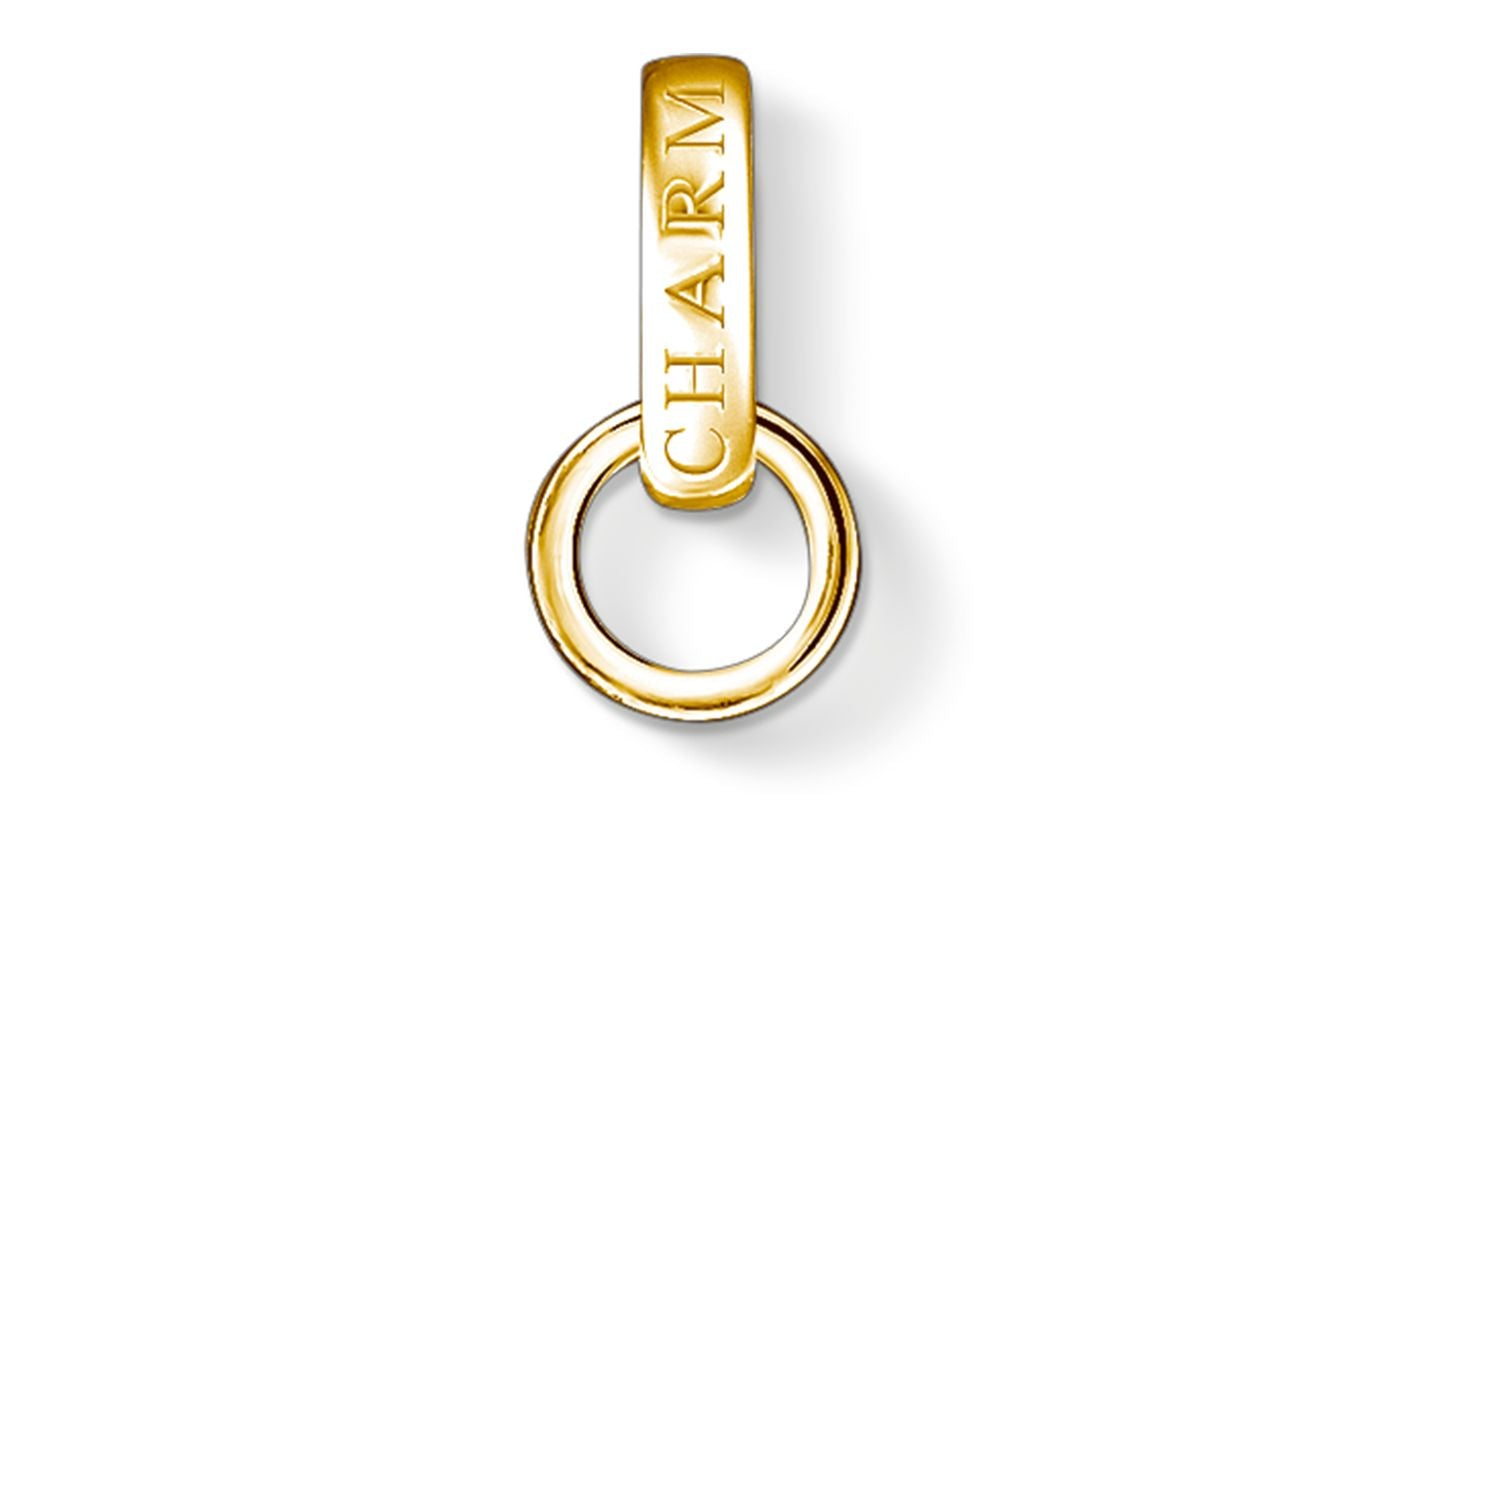 C/CLUB STERLING SILVER YELLOW GOLD PLATED CHARM CARRIER